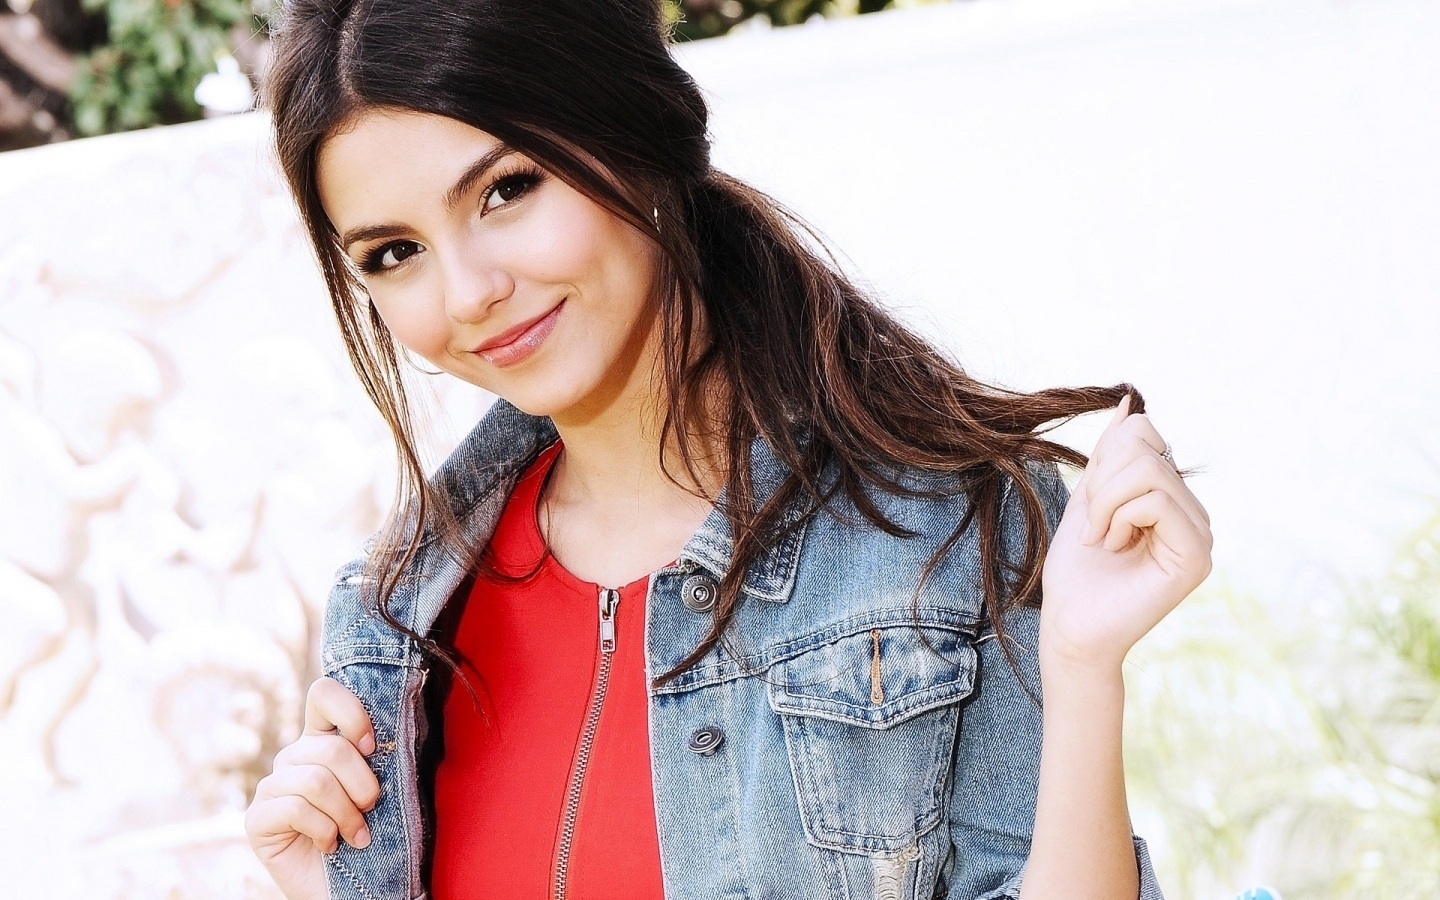 lovely victoria justice beauty style look mobile download background free hd photos